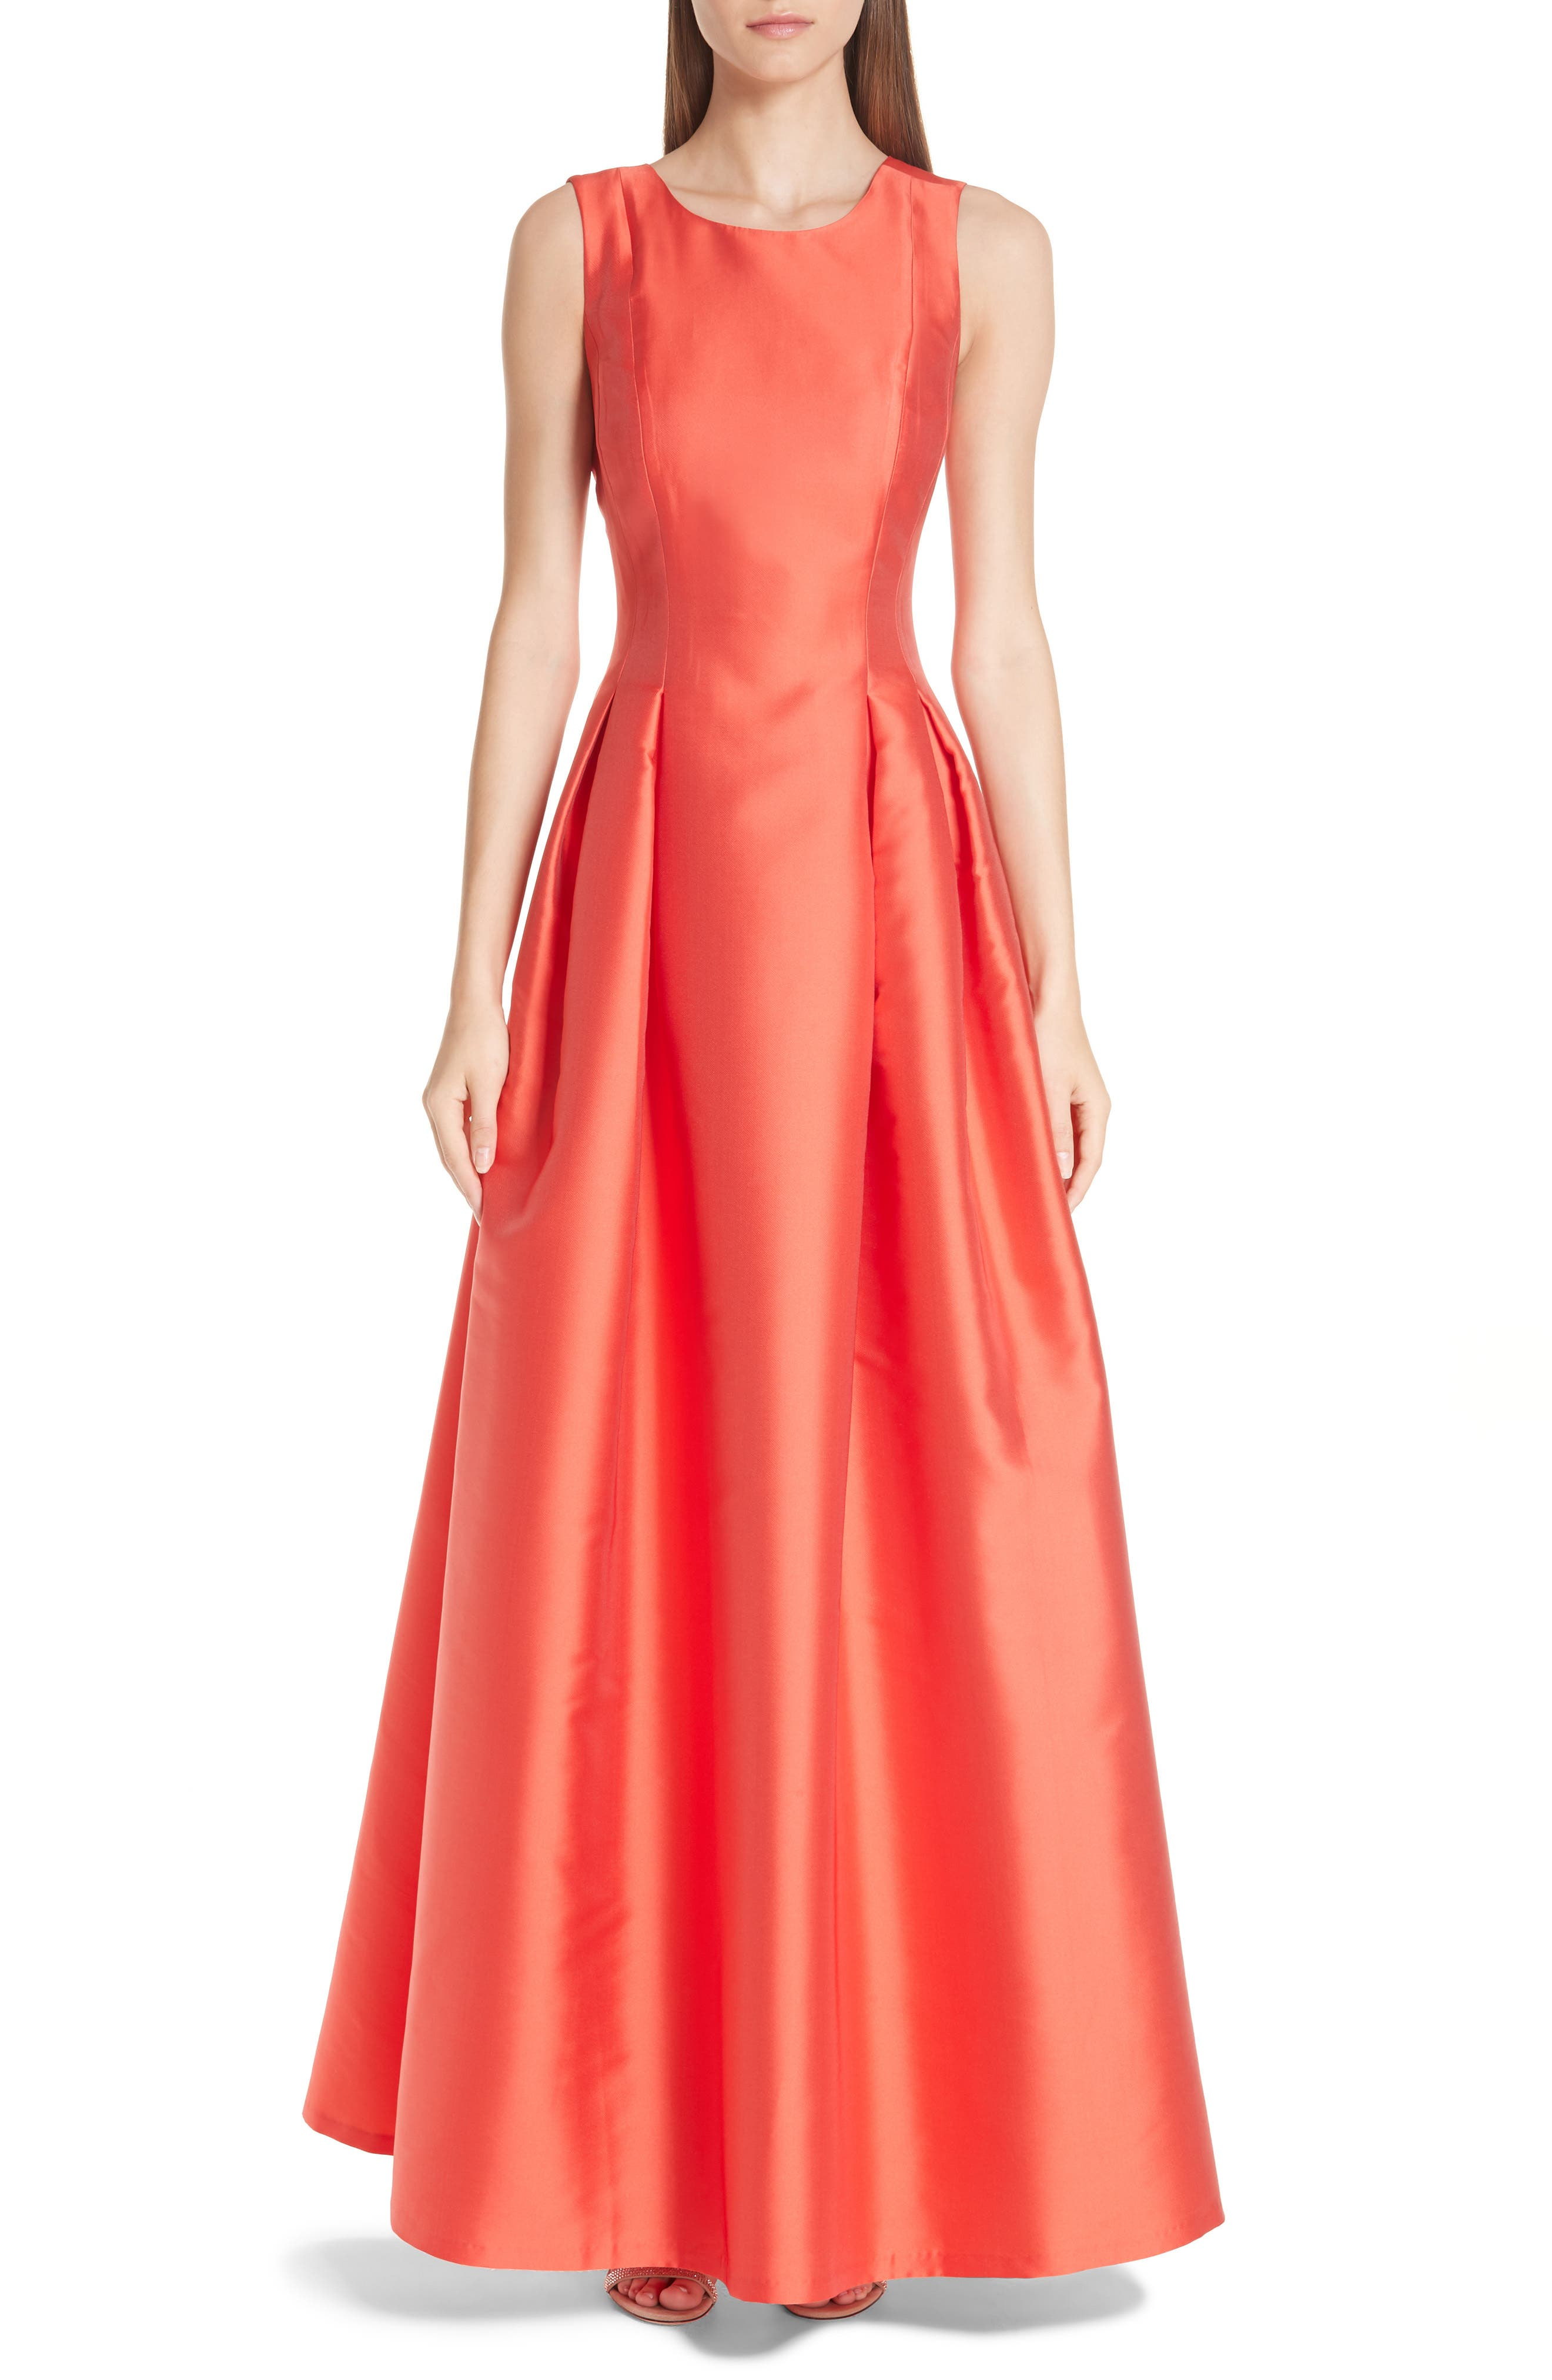 Marmara Ballgown,                         Main,                         color, Coral Red